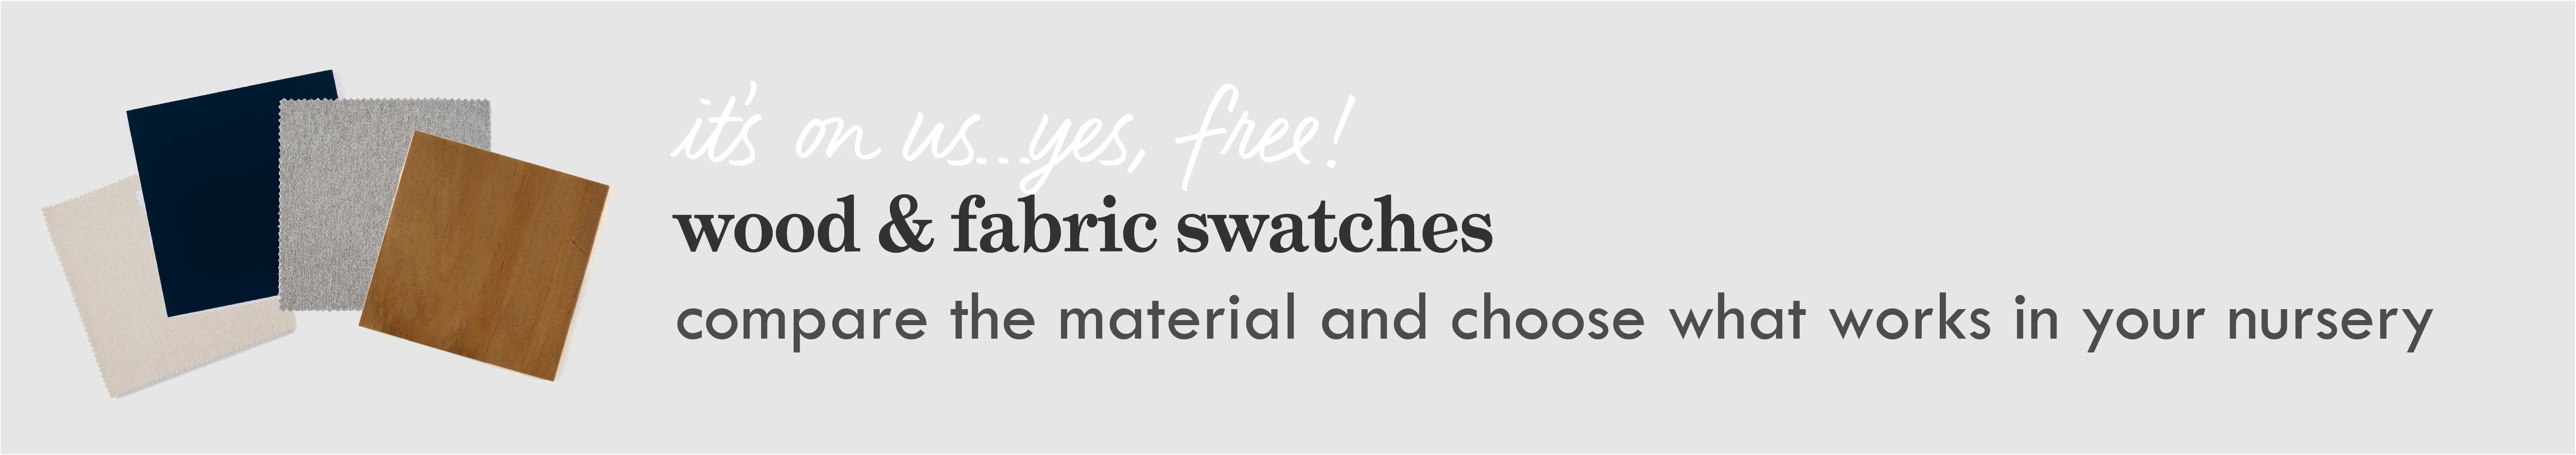 free wood & fabric swatches